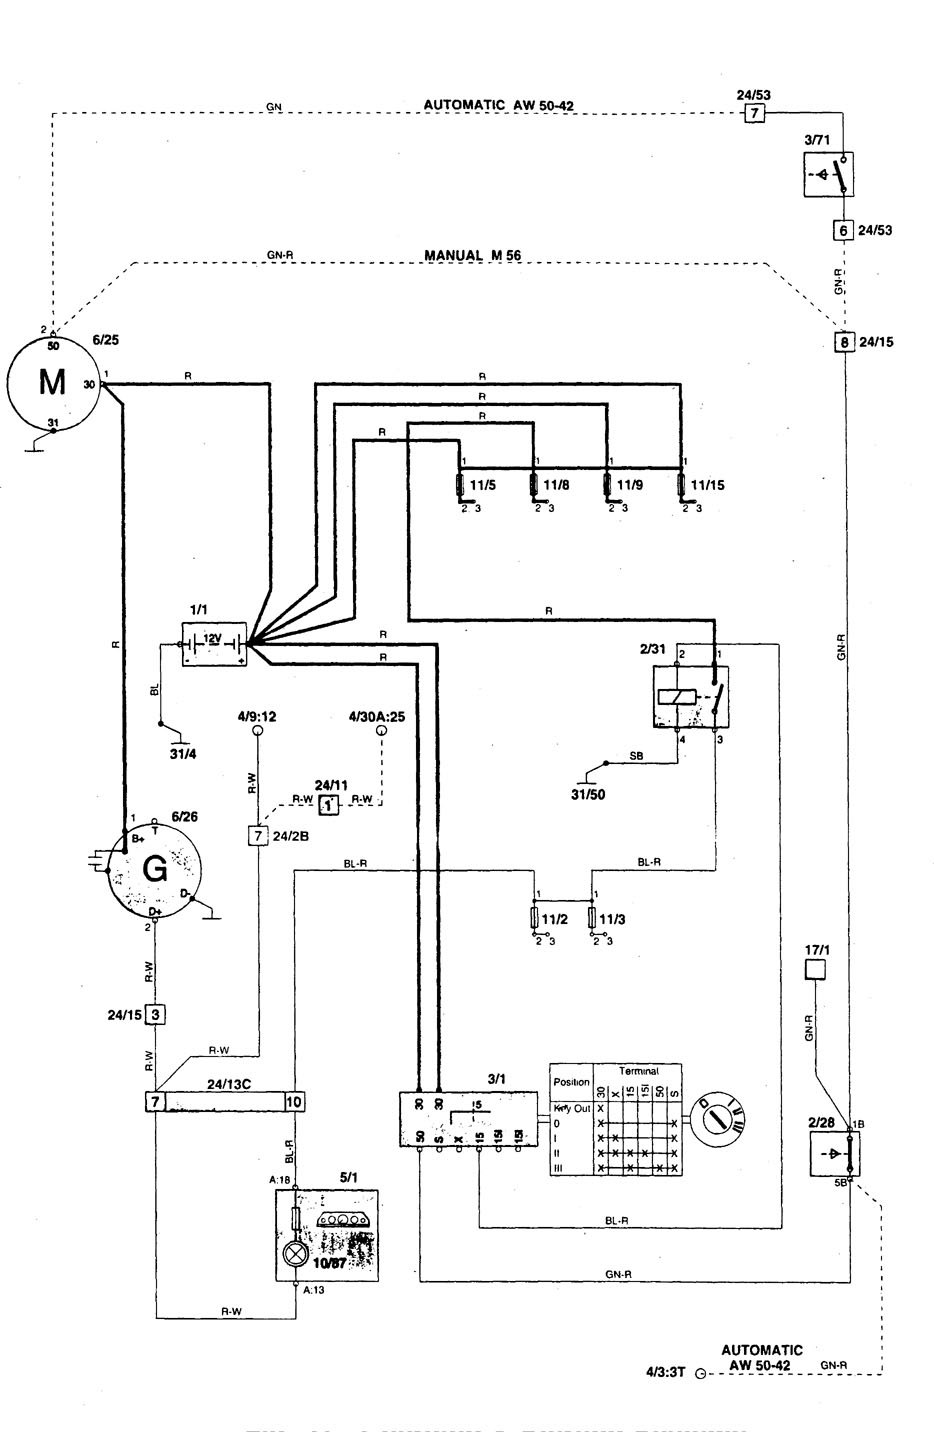 Volvo 850 1996 1997 Wiring Diagrams Charging System Diagram